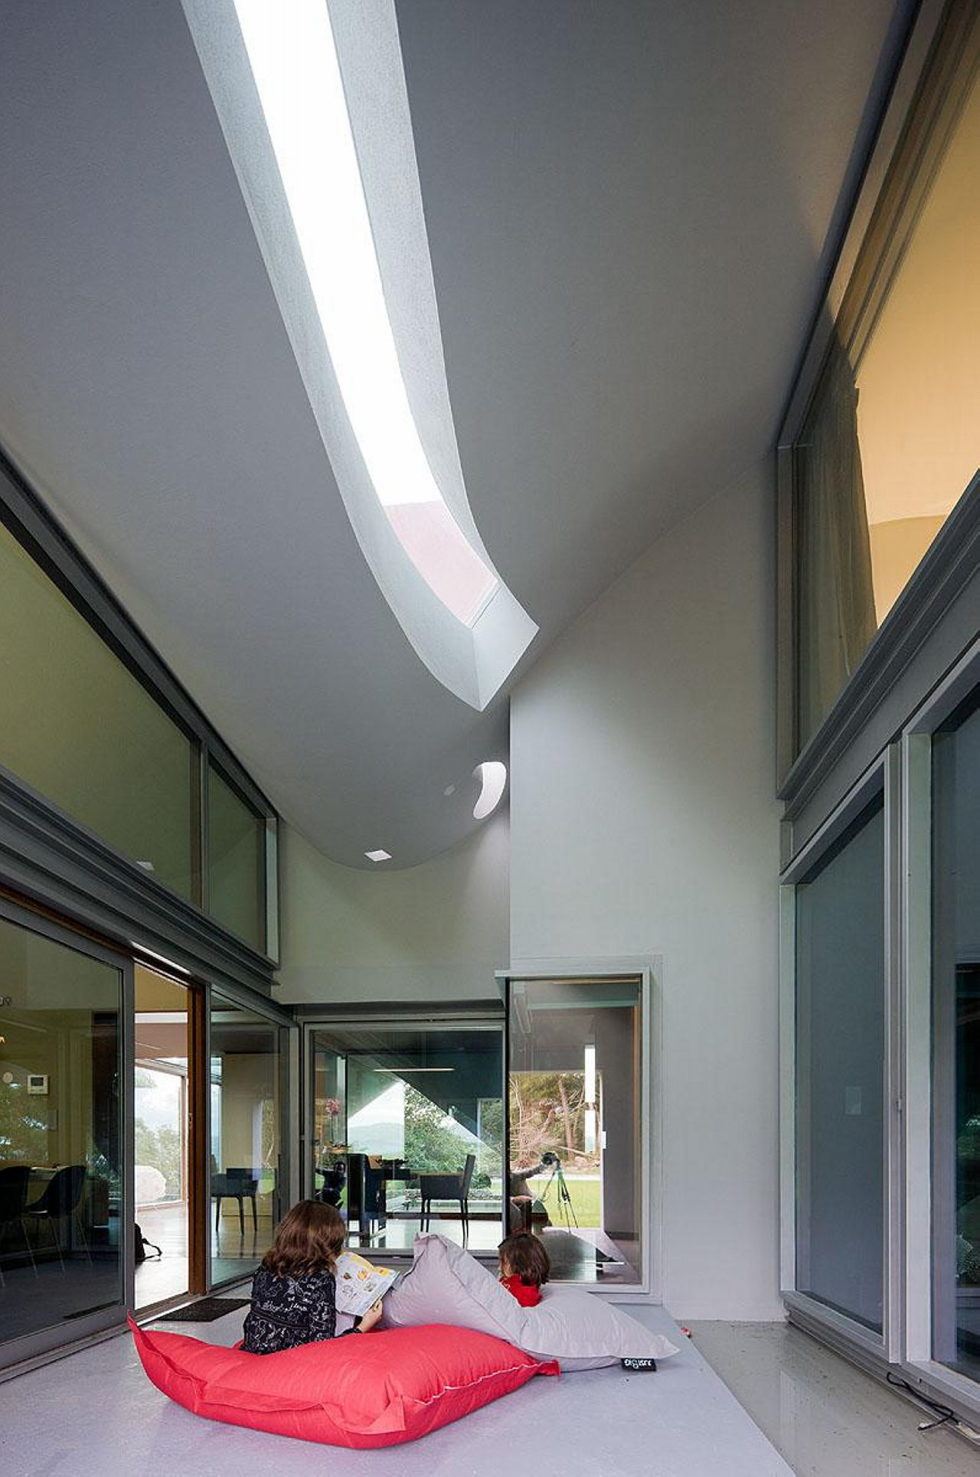 Voo dos Passaros The House In Portugal, The Project Of Bernardo Rodrigues Architect 16